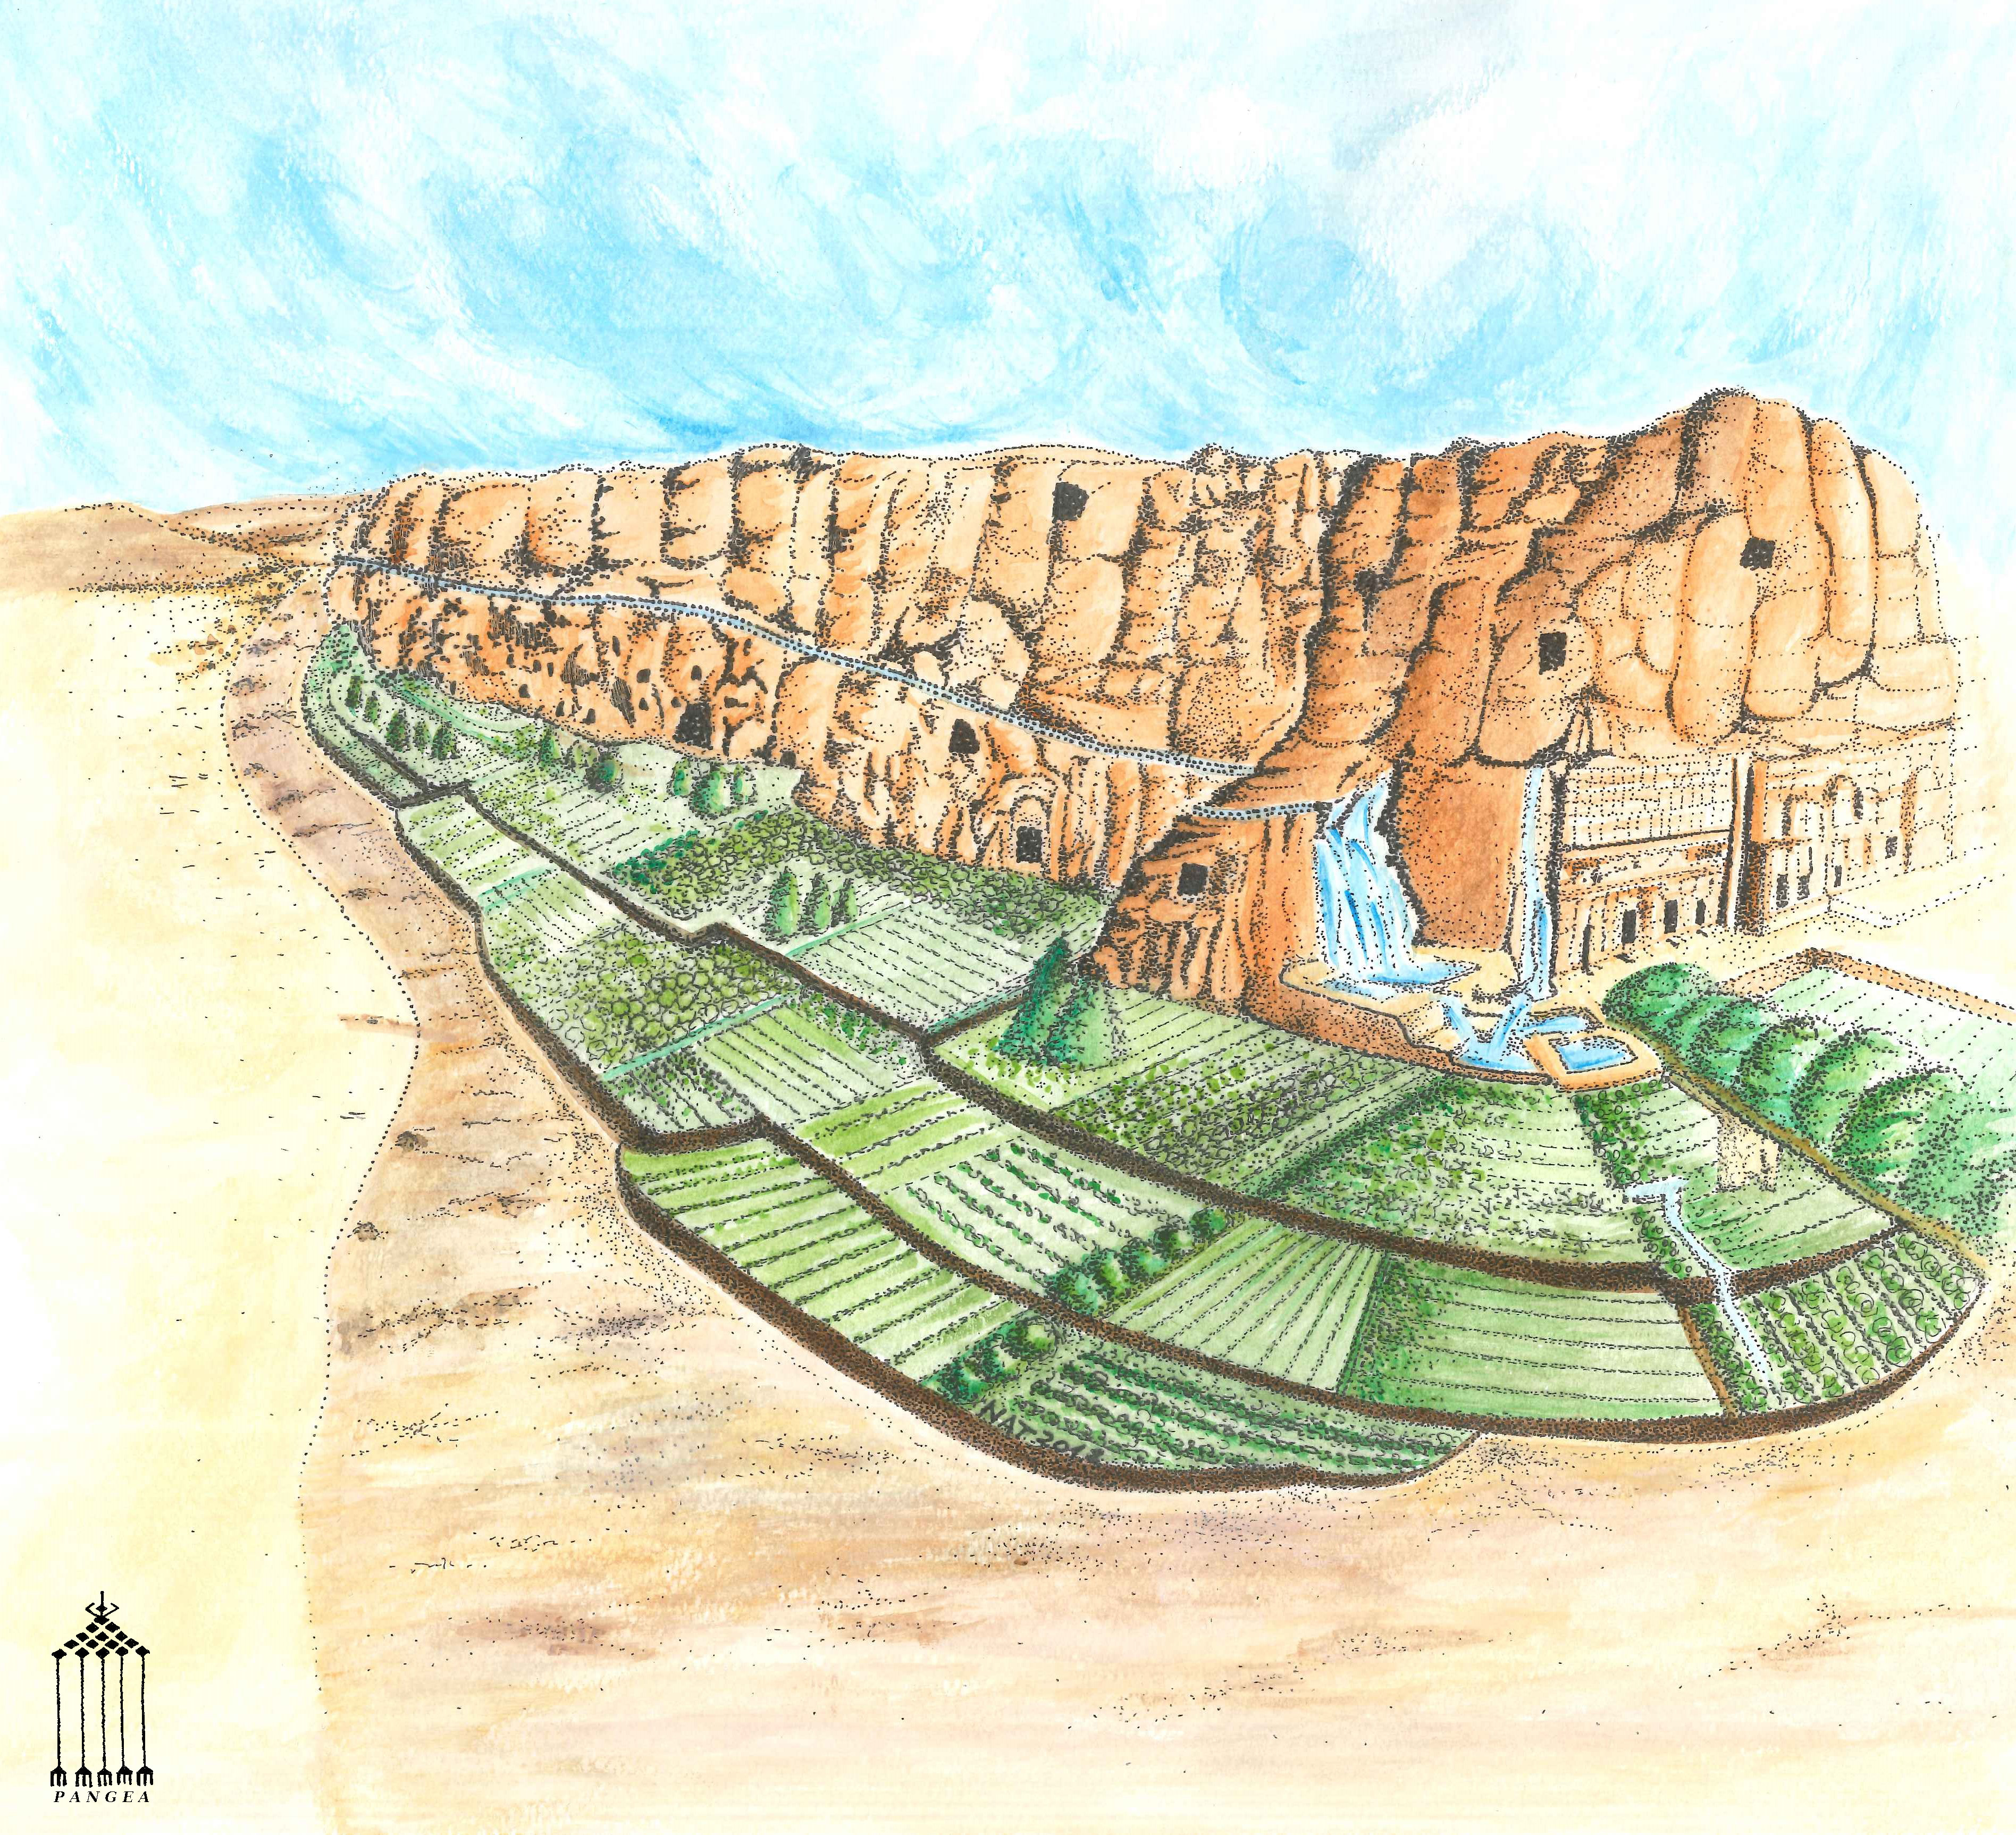 Petra - Reconstruction of system of water terraces planted